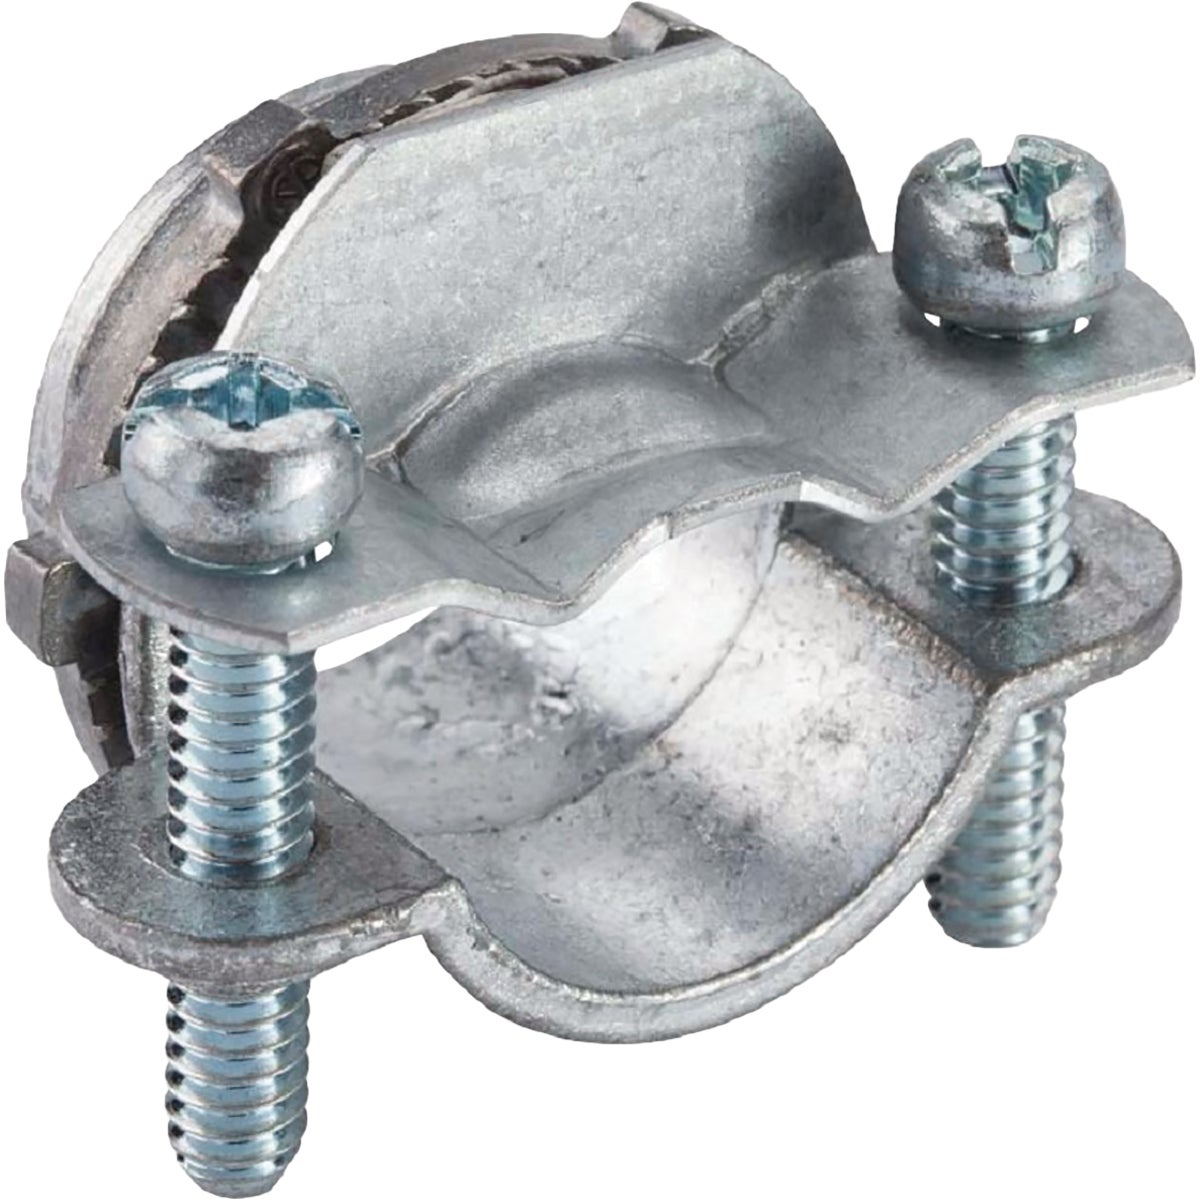 """3/8"""" BOX CONNECTOR - NC85010 by Thomas & Betts"""